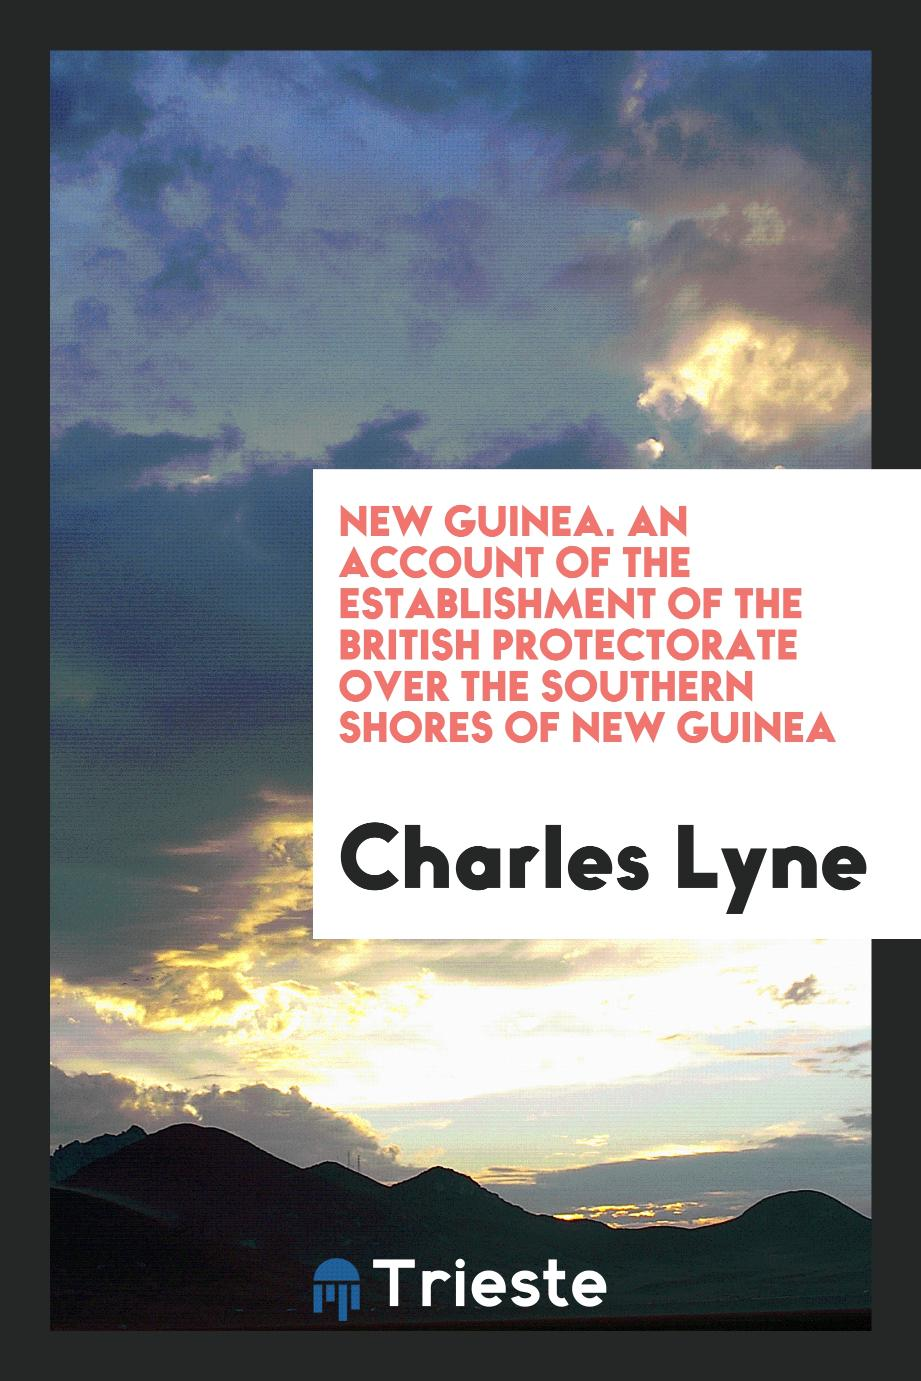 New Guinea. An account of the establishment of the British protectorate over the southern shores of New Guinea